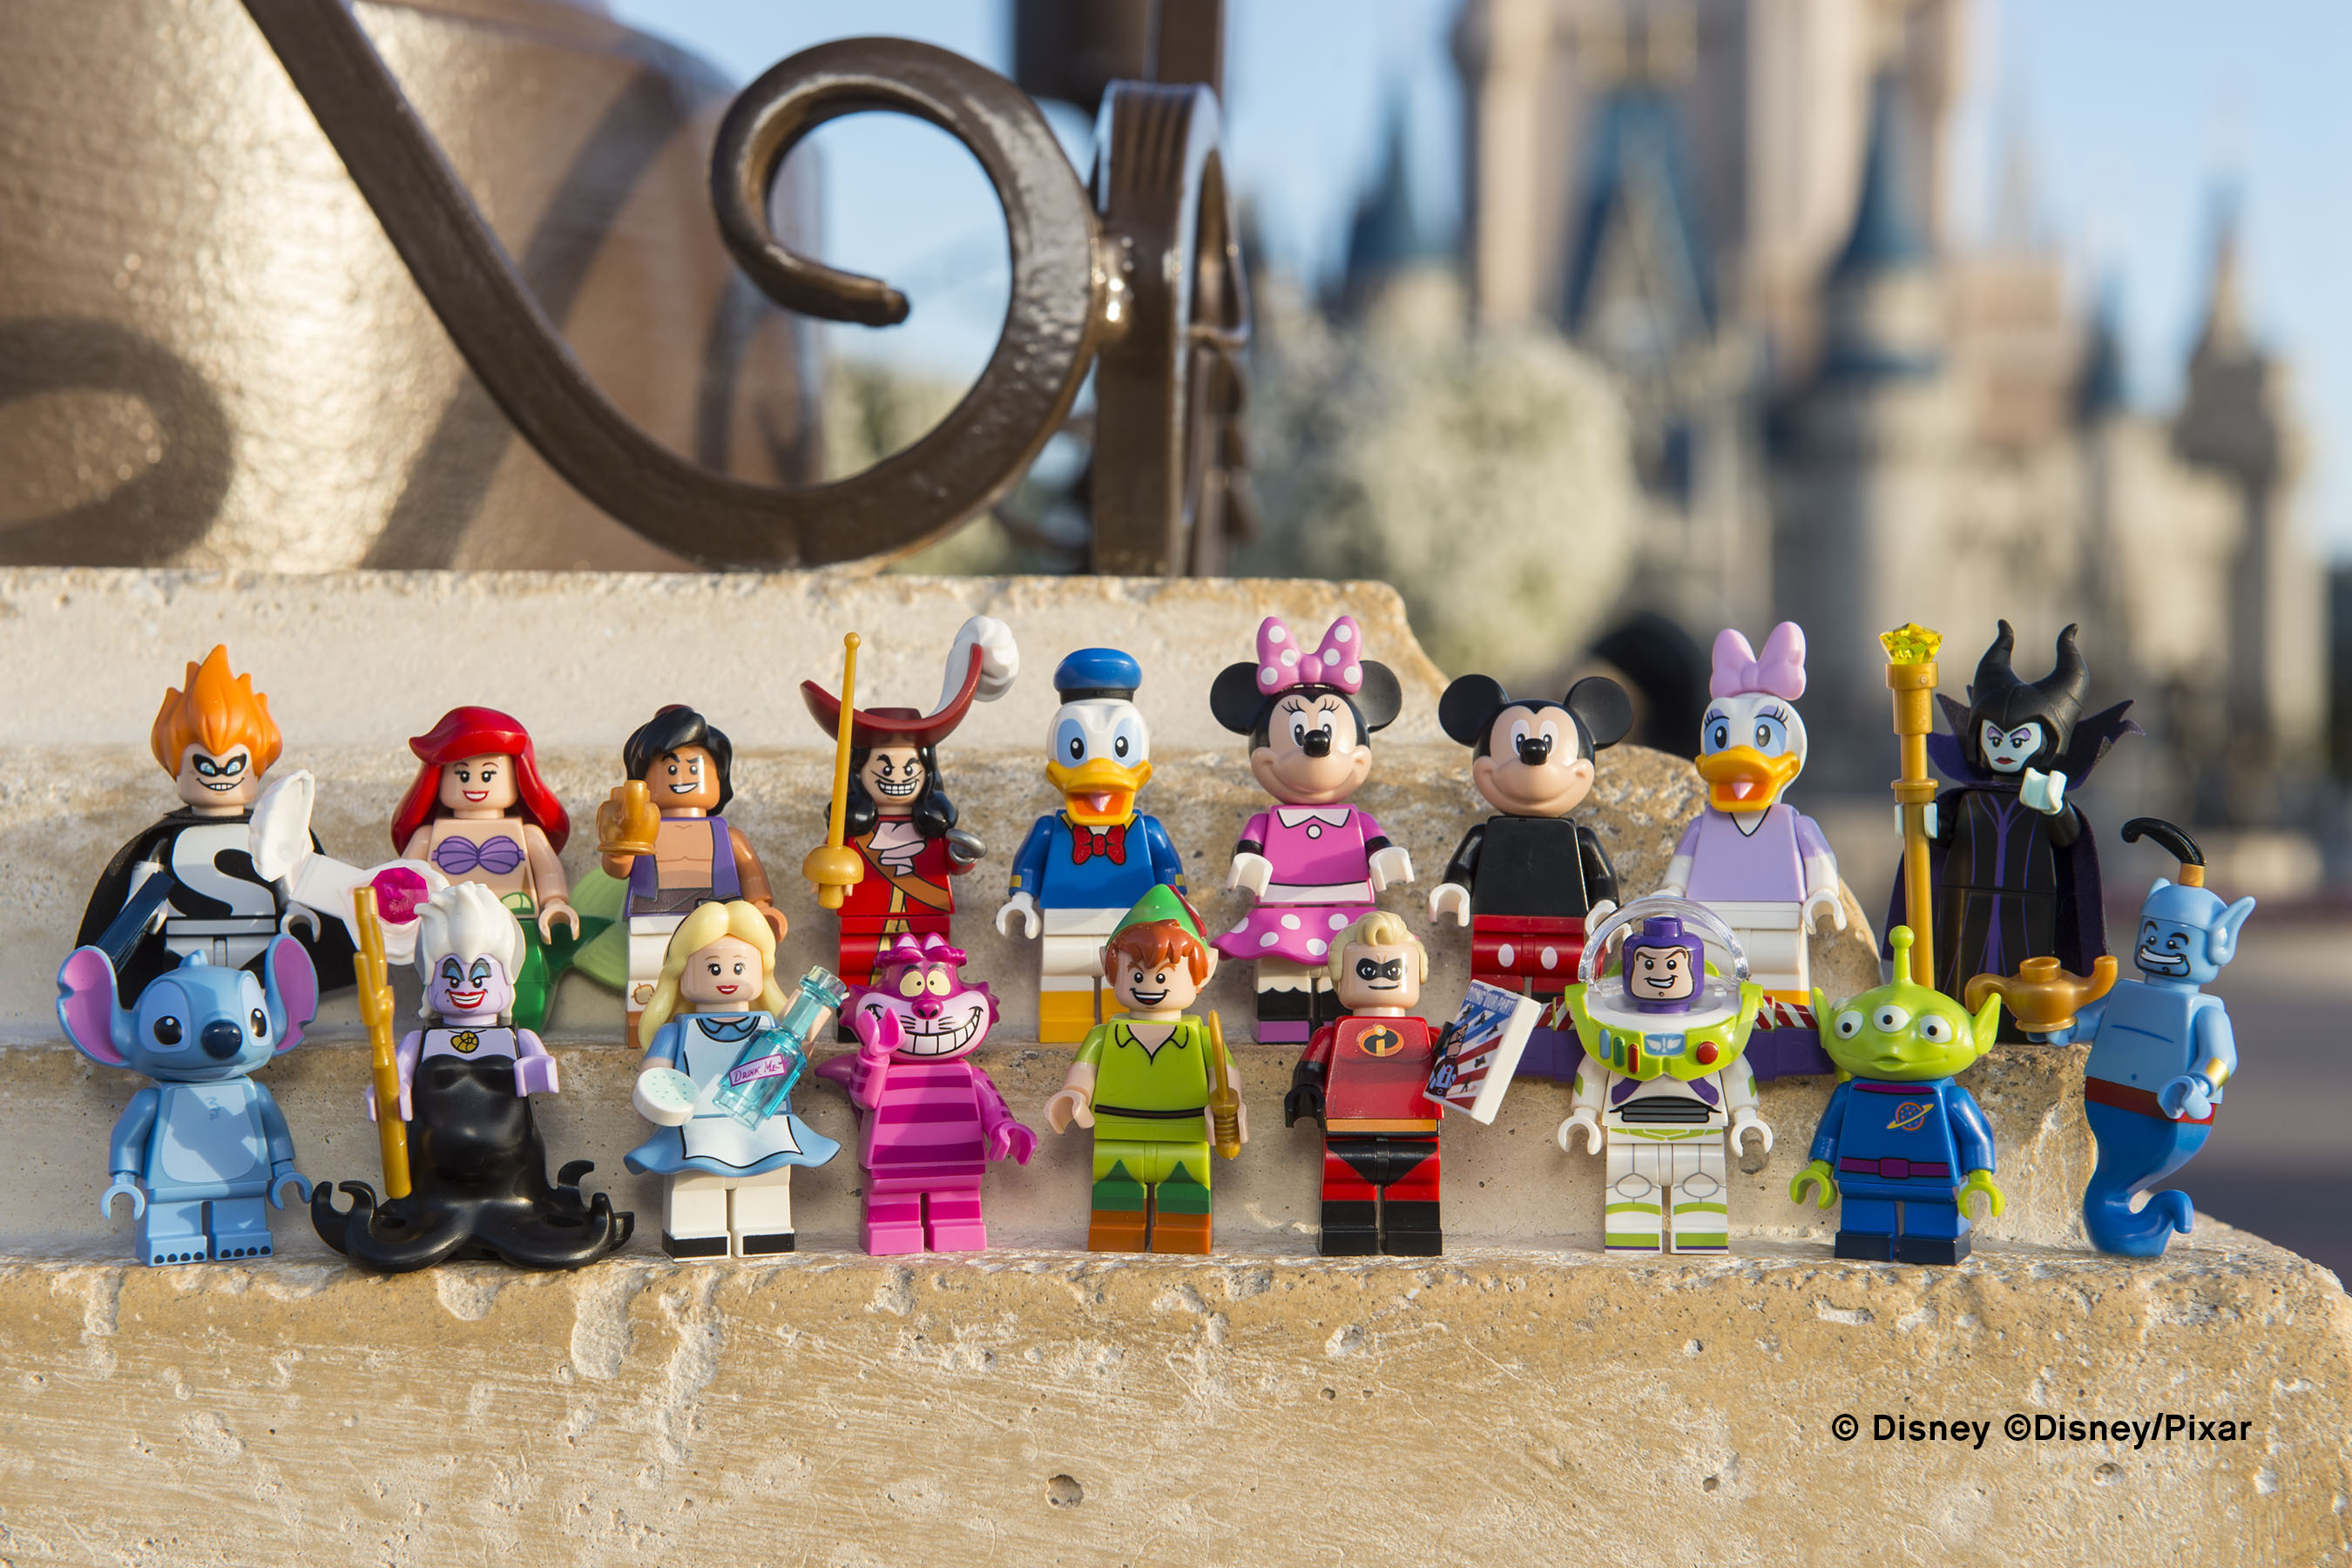 LEGO will start selling Disney Minifigures this spring.